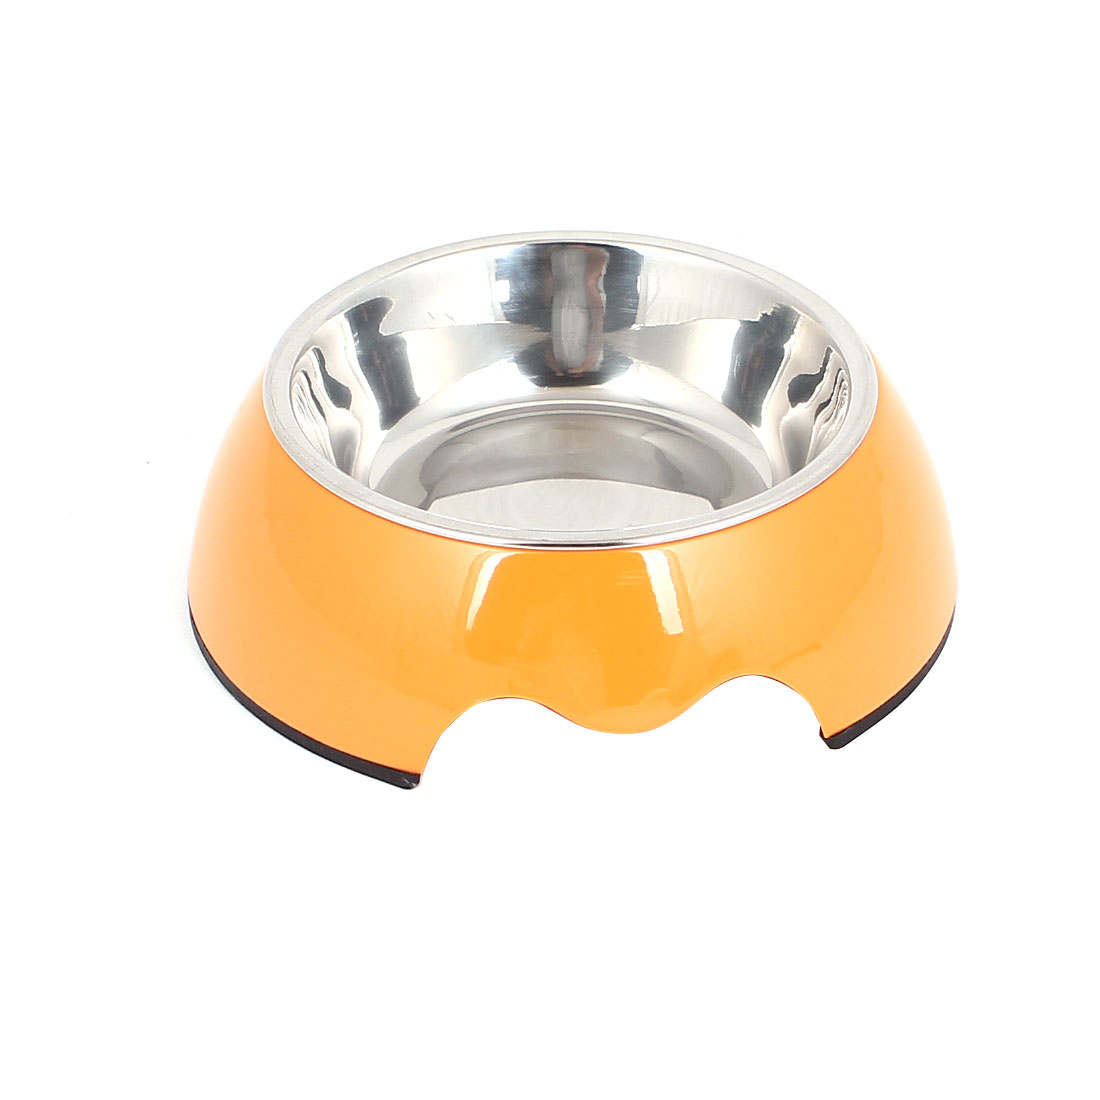 Pet Cat Dog Doggie Stainless Steel Dish Food Water Feeding Feeder Bowl Orange